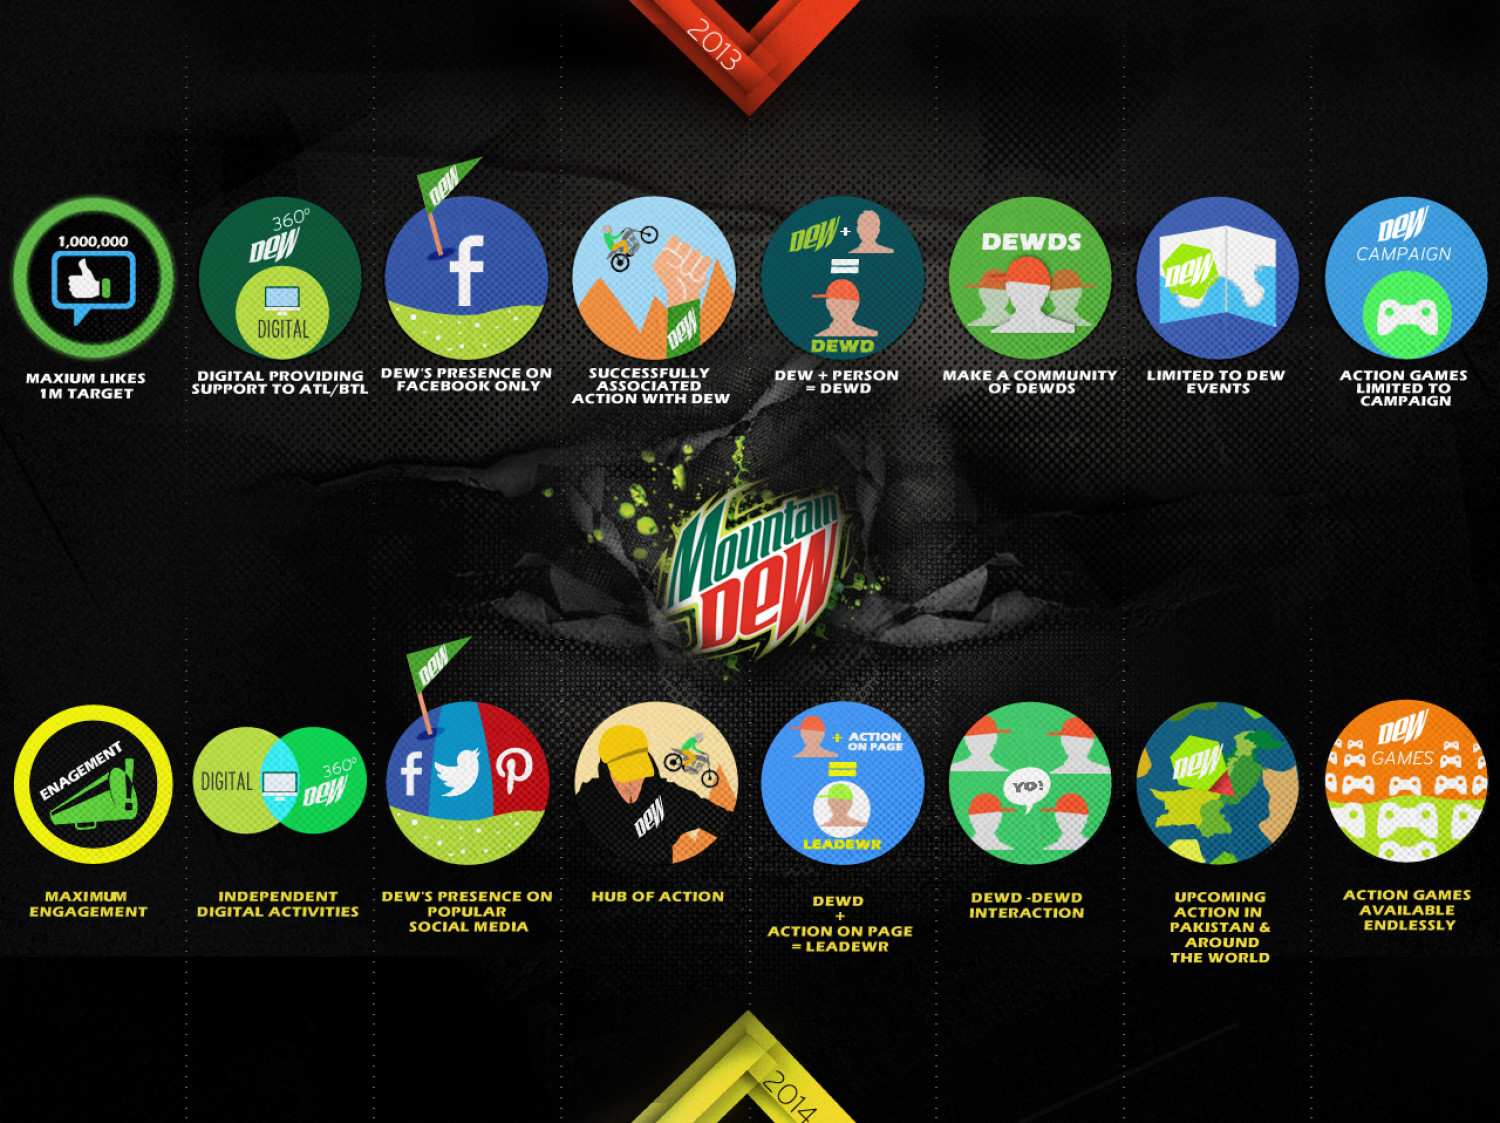 Mountain Dew 2013 VS. 2014 Infographic